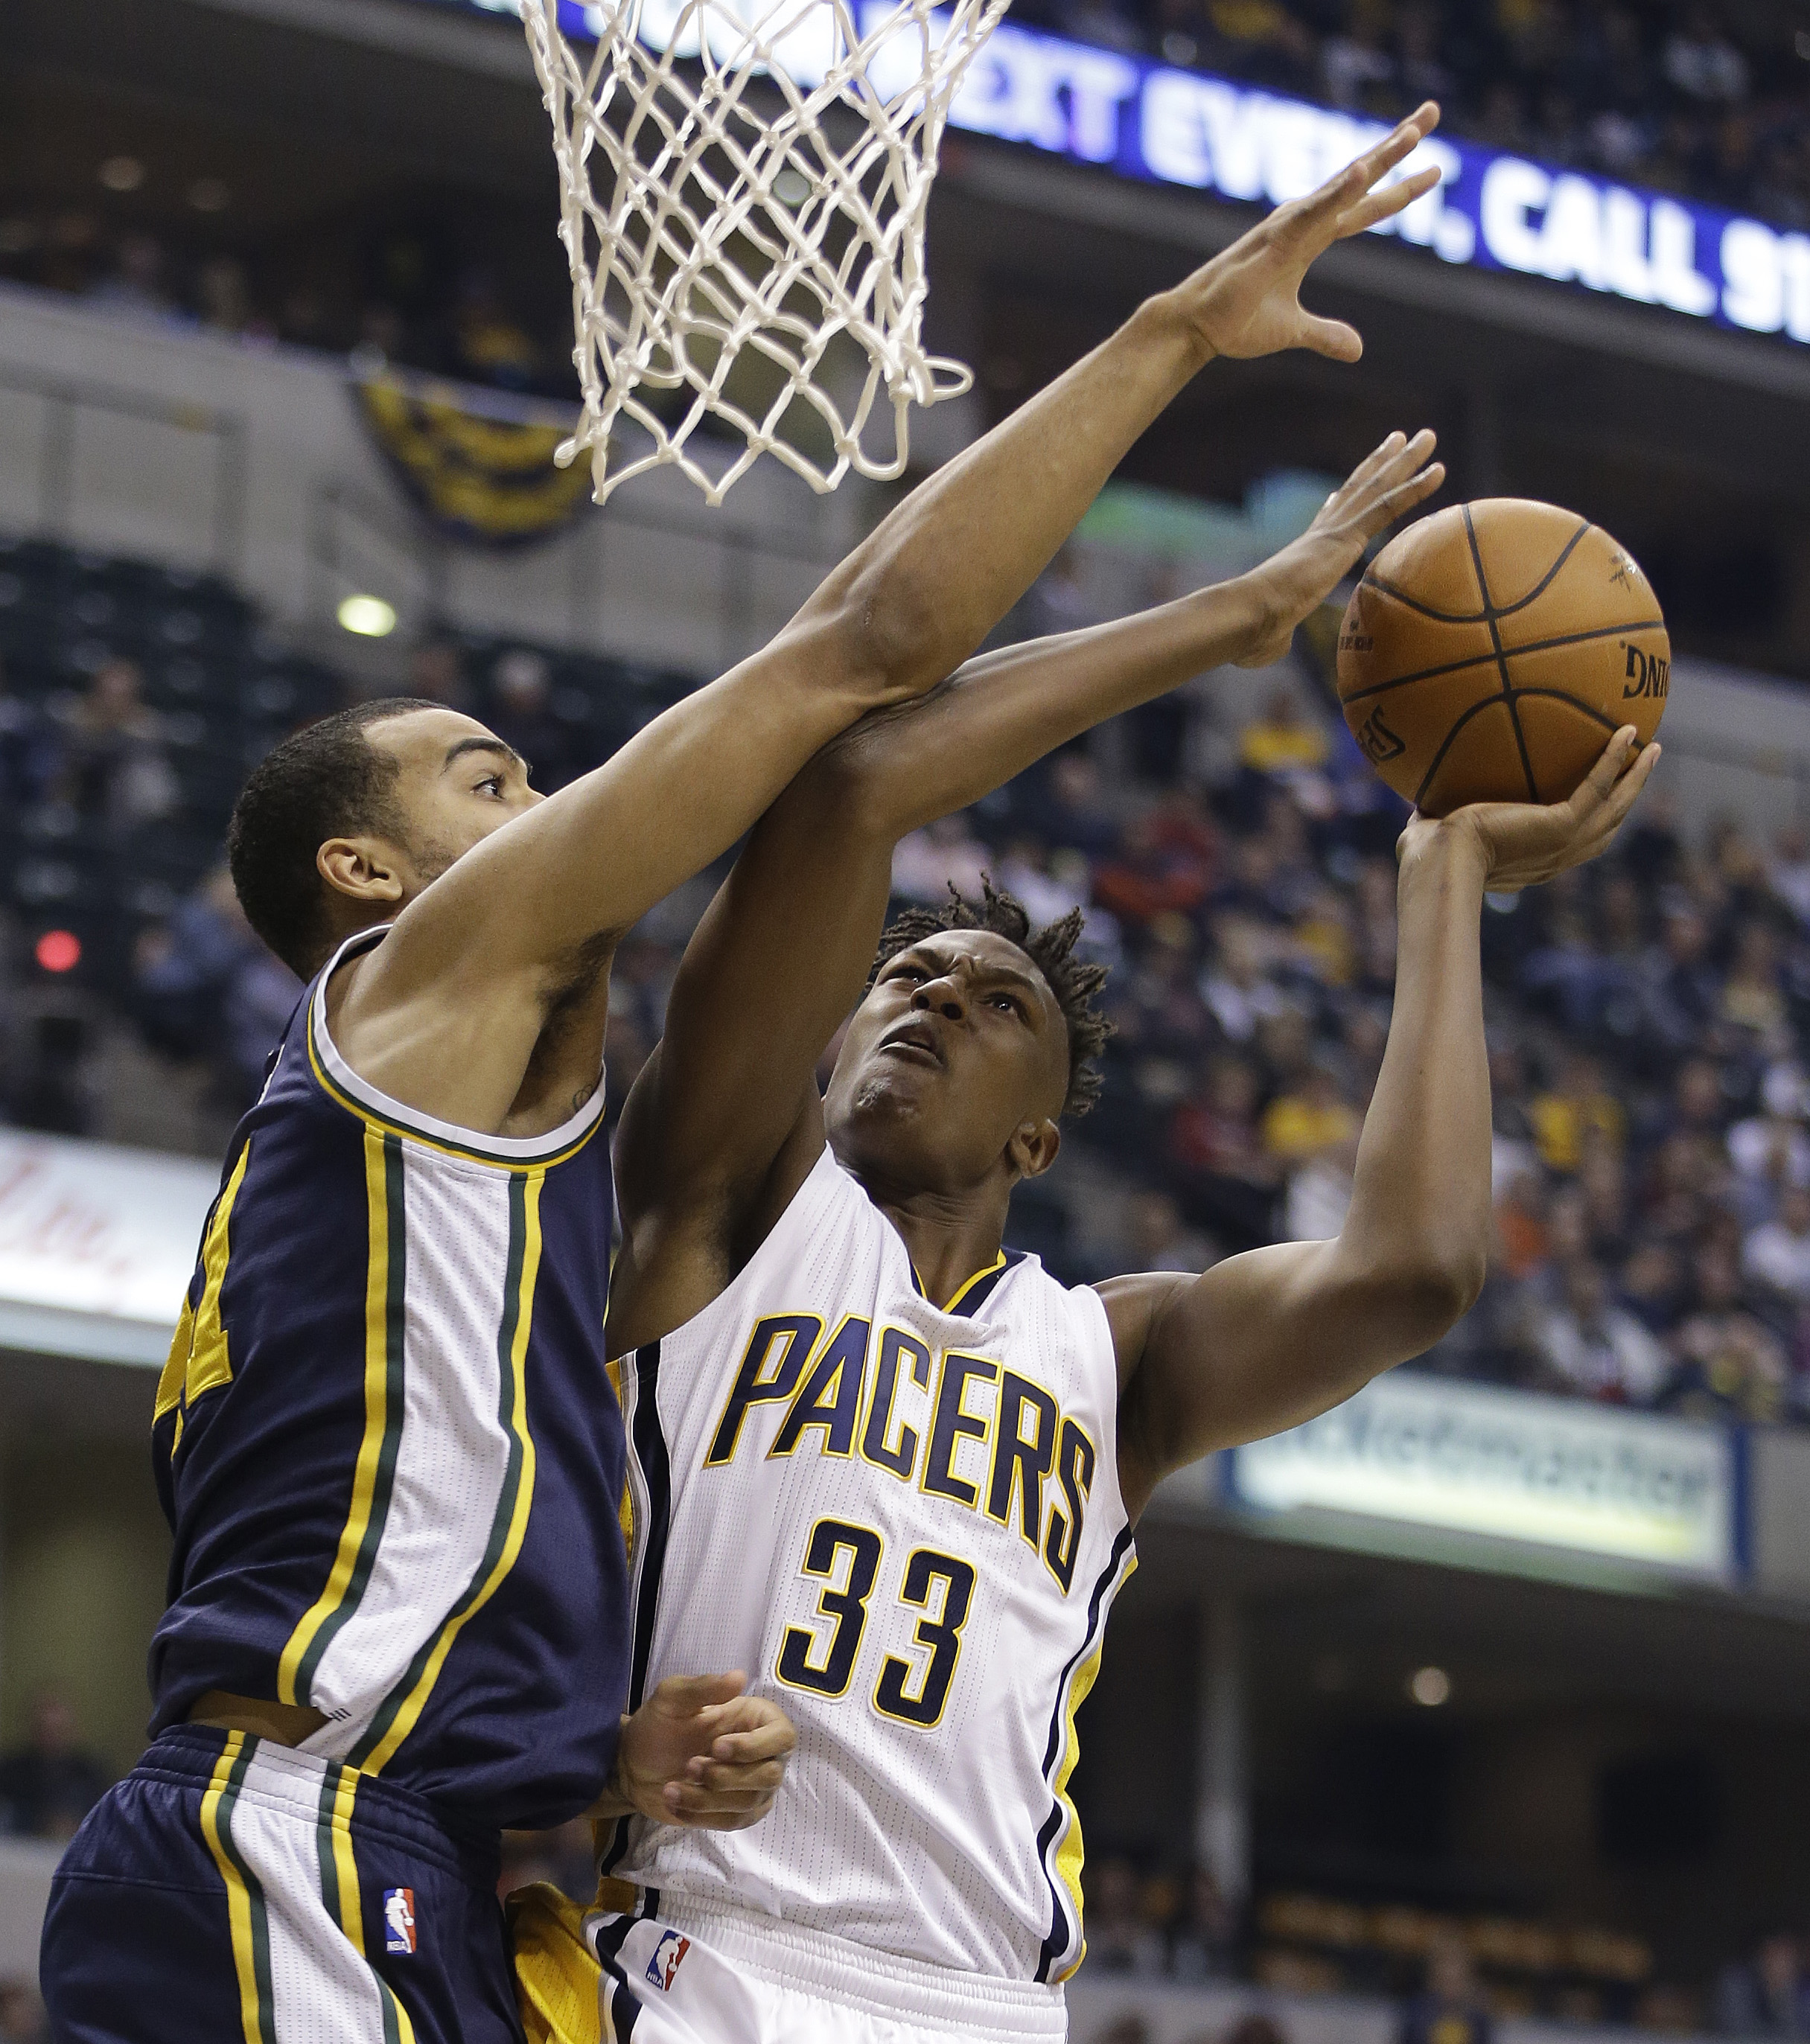 Indiana Pacers' Myles Turner (33) shoots against Utah Jazz's Trey Lyles, left, during the first half of an NBA basketball game Saturday, Oct. 31, 2015, in Indianapolis. (AP Photo/Darron Cummings)